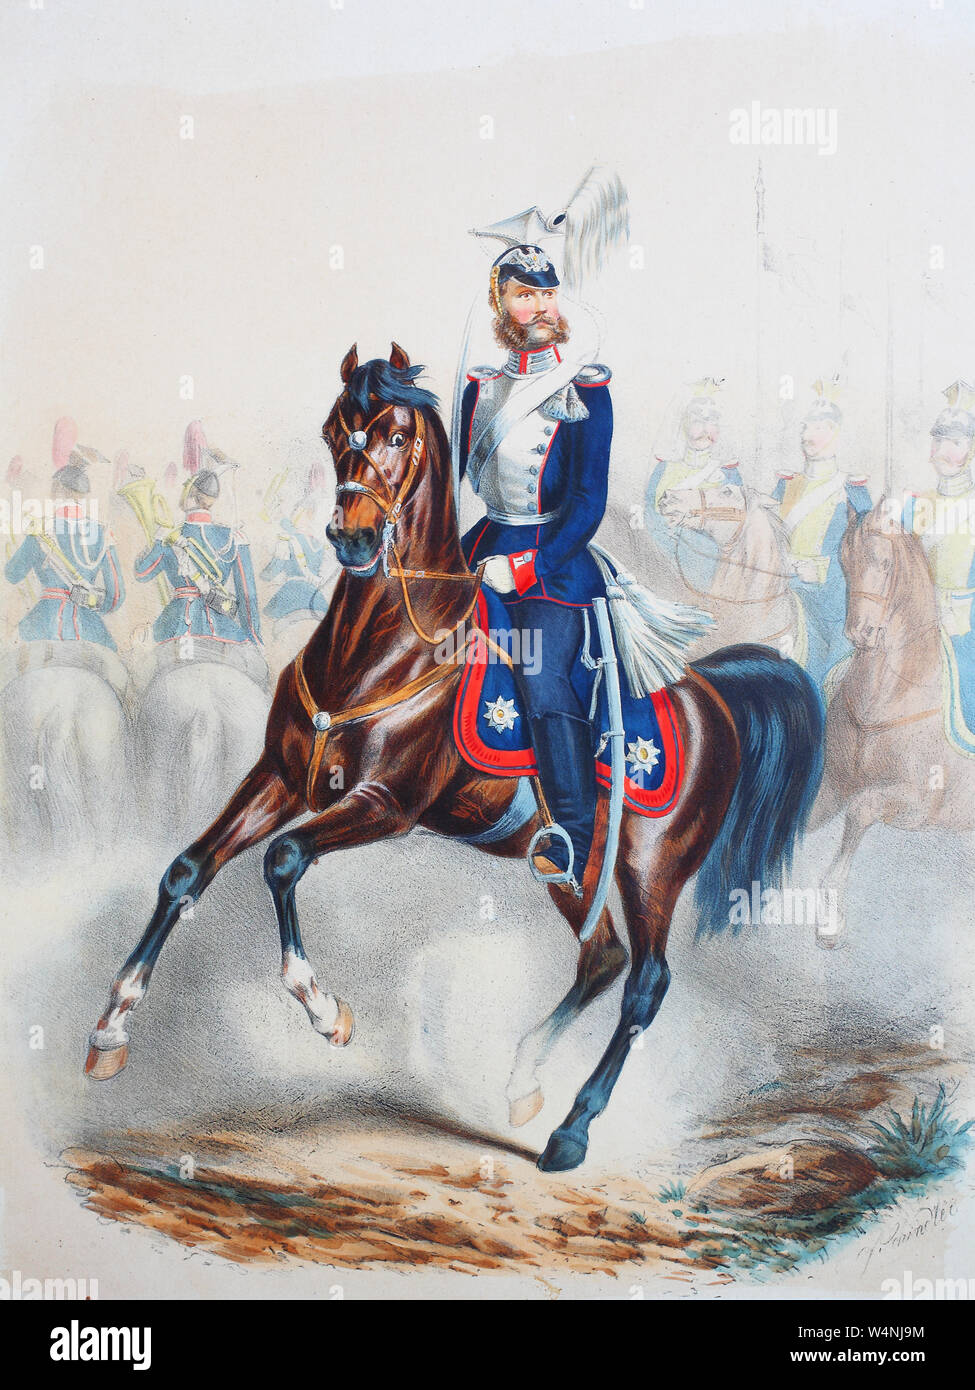 Royal Prussian Army, Guards Corps, Preußens Heer, preussische Garde, Garde Ulanen Regiment, Trompeter, Offizier, gemeine Soldaten, Digital improved reproduction of an illustration from the 19th century Stock Photo